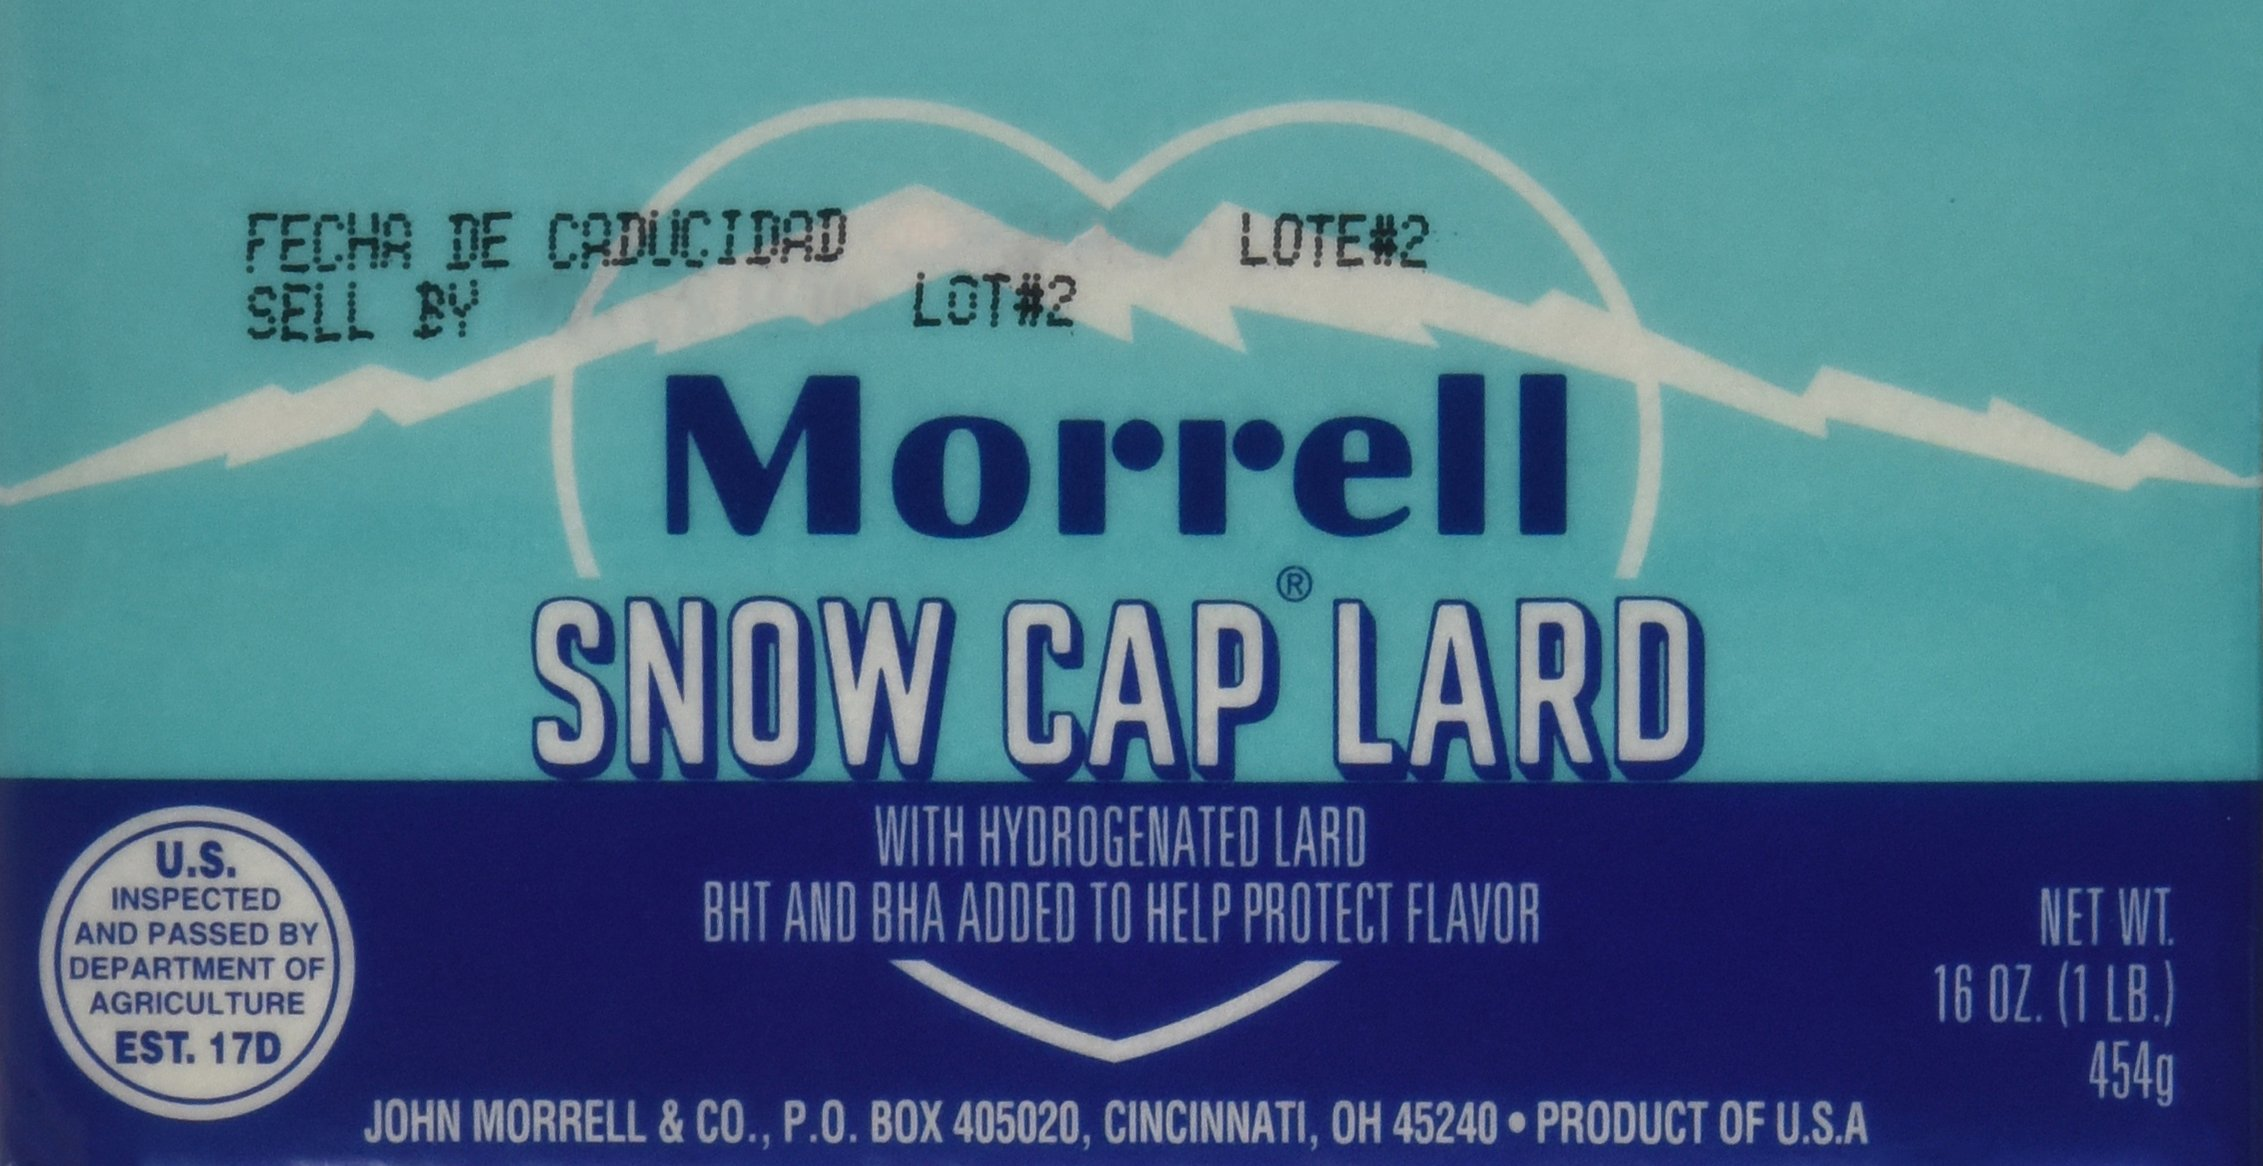 Snow Cap Lard - 16oz. each (Quantity of 6)